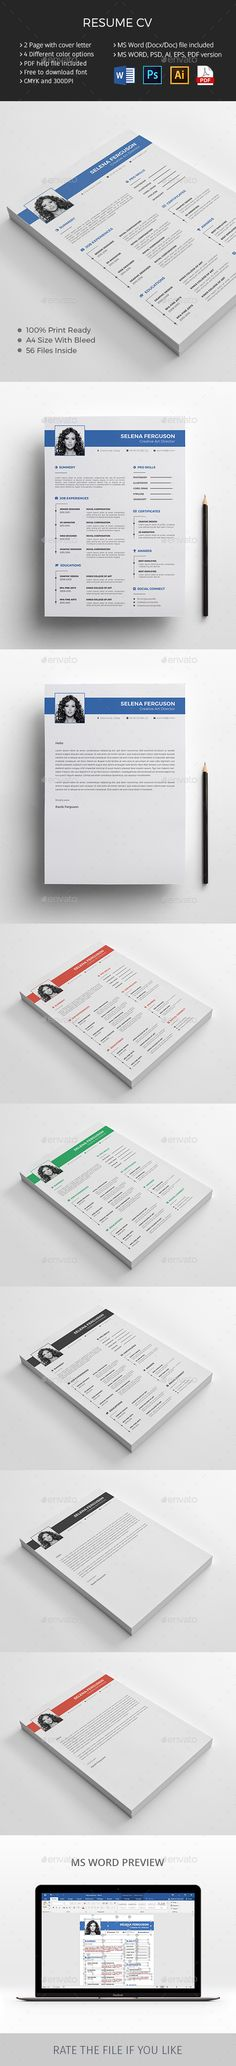 Resume Cv Templates Free Download%0A Usa Map Puzzle Abcya